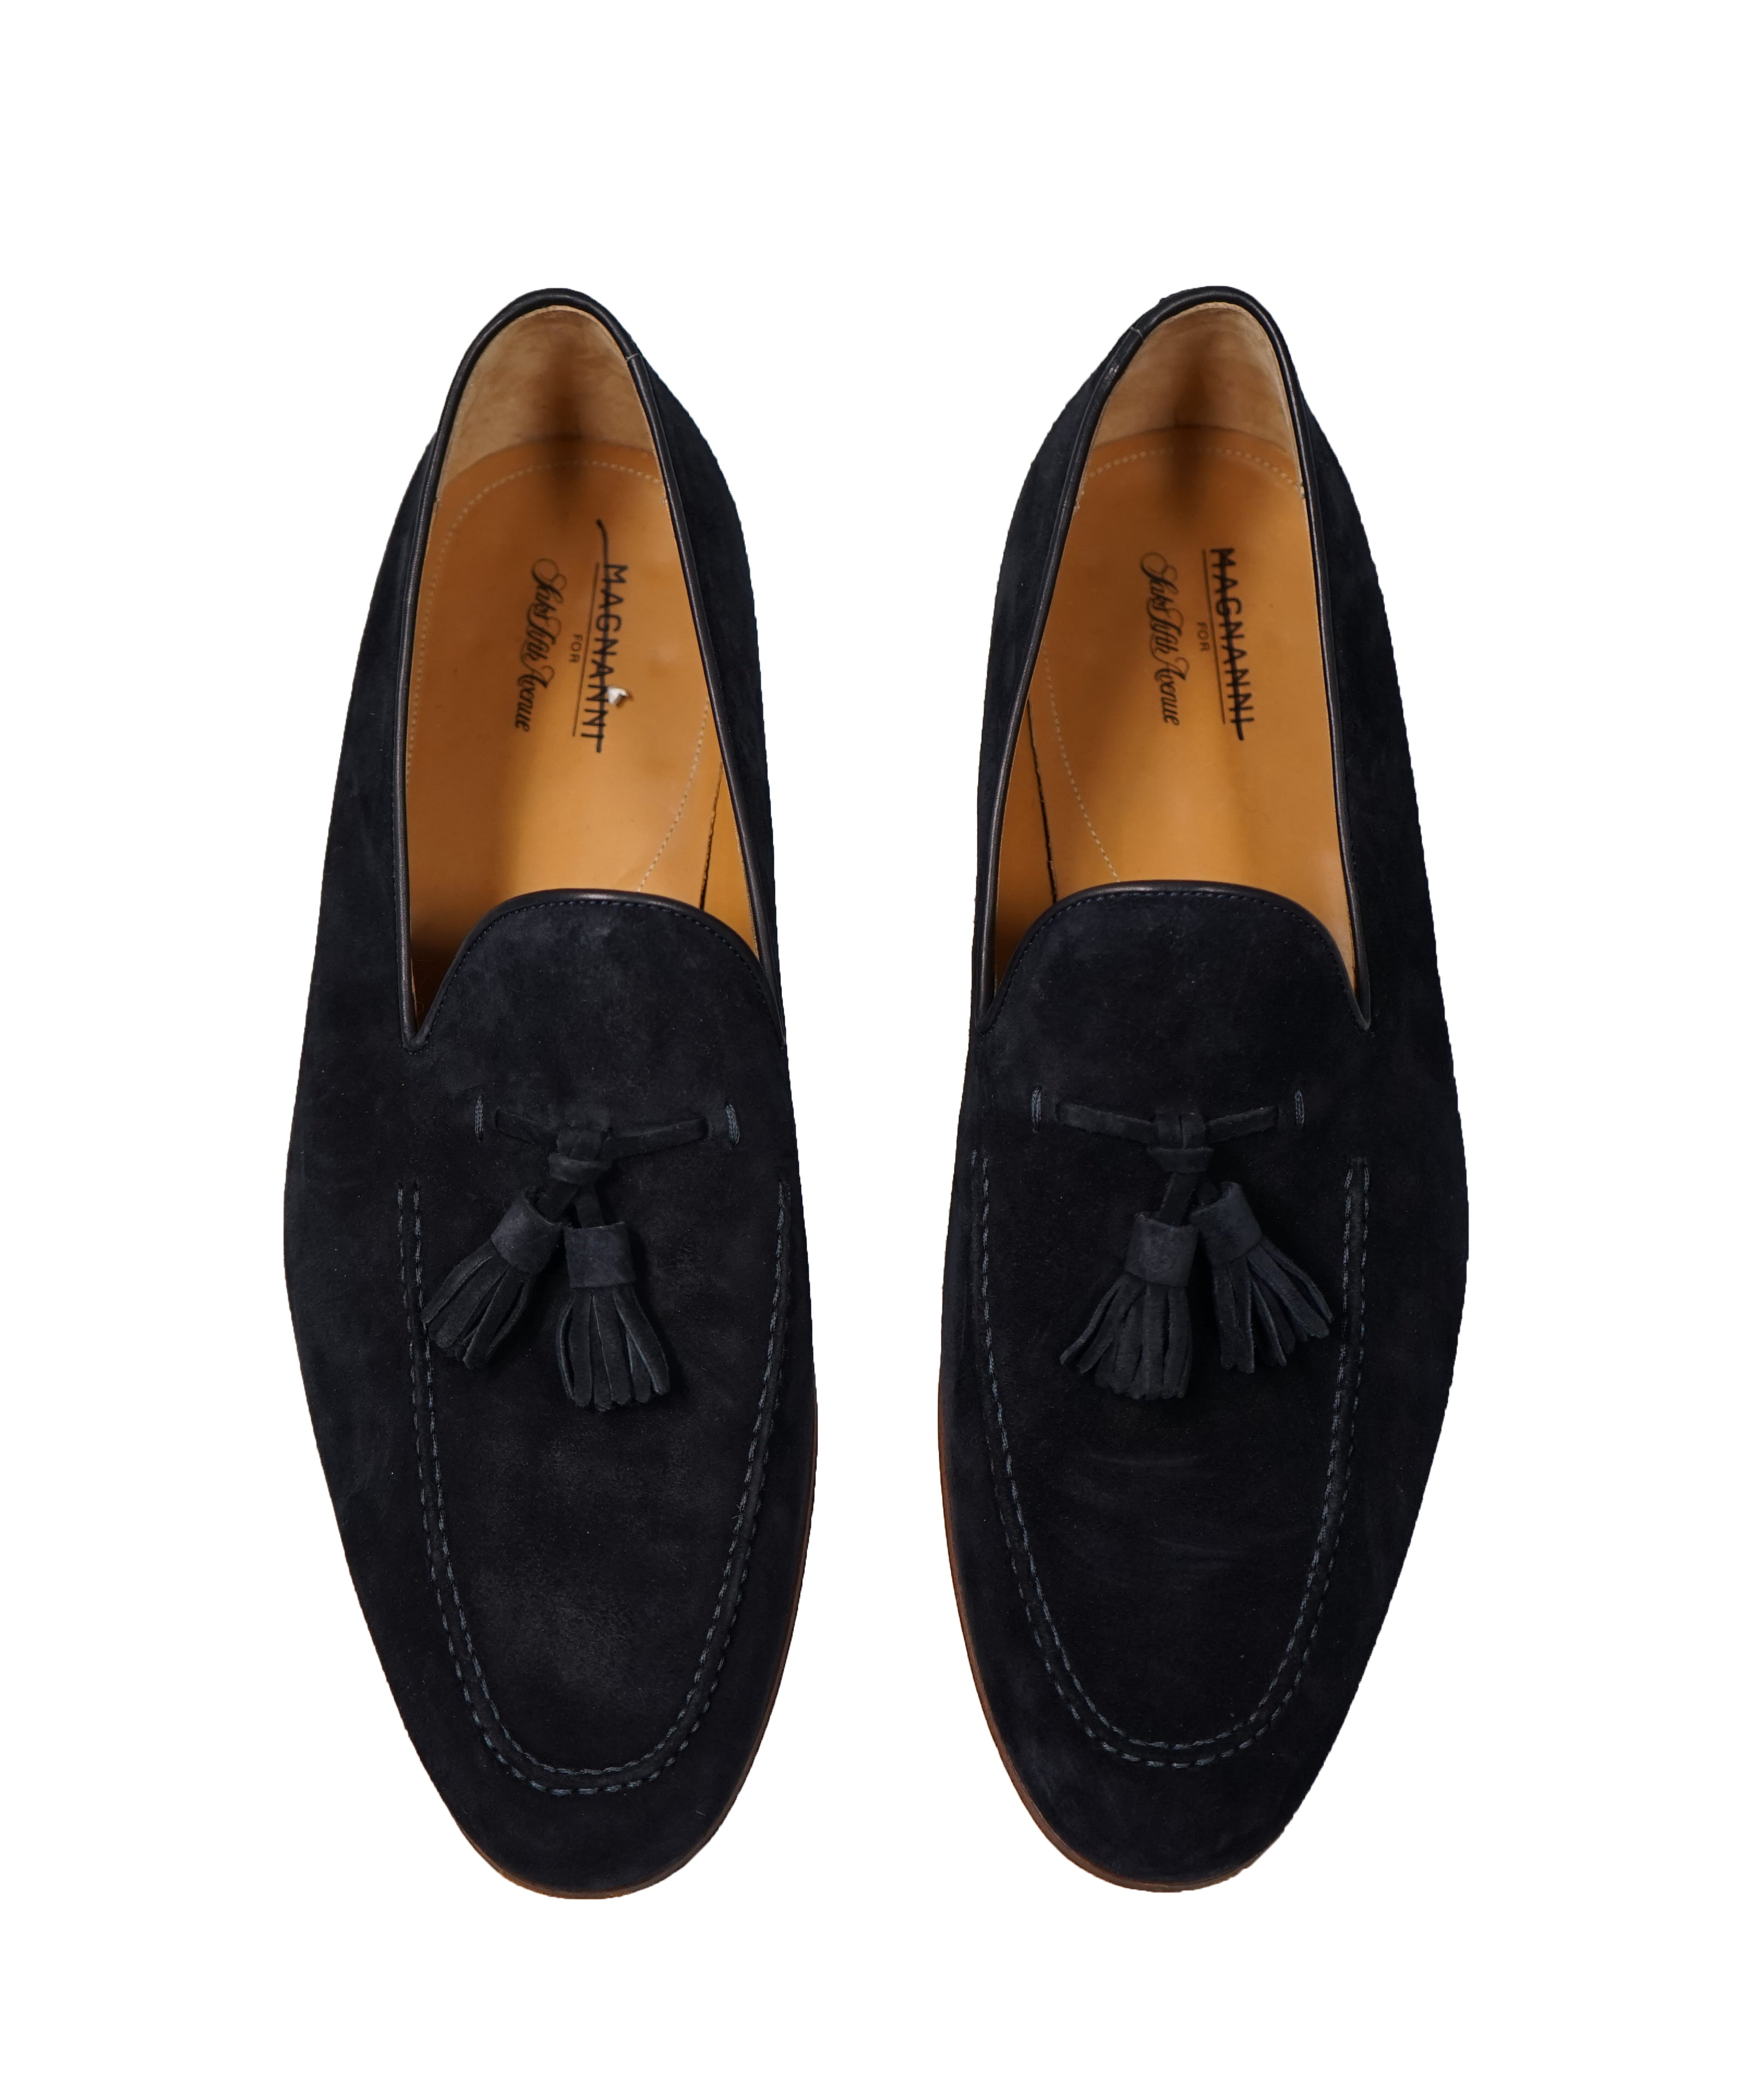 MAGNANNI For SAKS FIFTH AVENUE-Blue Contrast Sole Tassel Loafers - 13